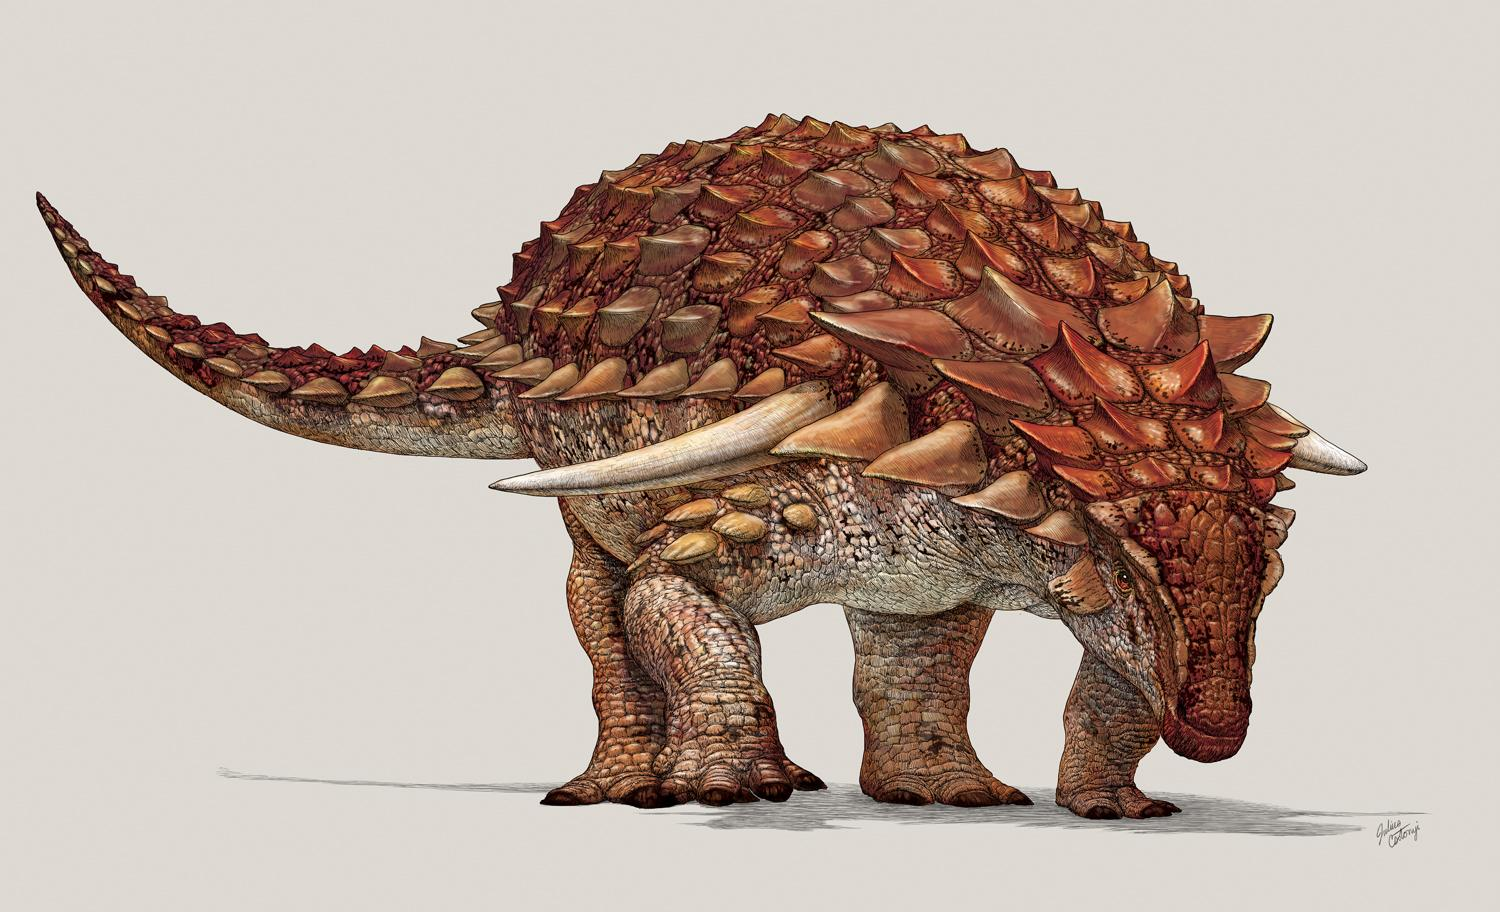 Meet Borealopelta markmitchelli, 'Best-Preserved Armored Dinosaur'